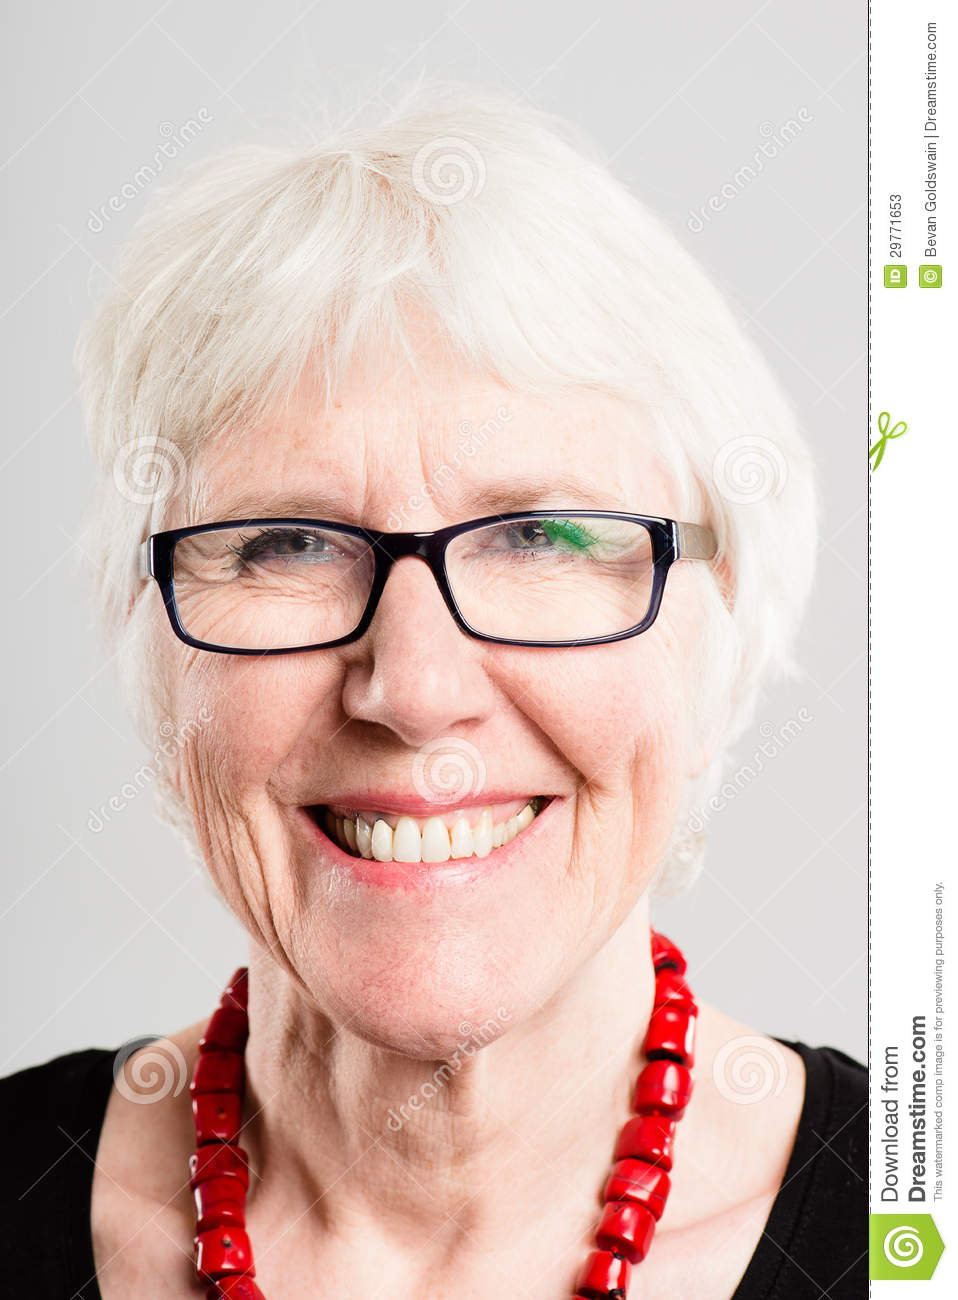 Portrait Real People High Definition Grey Background Stock